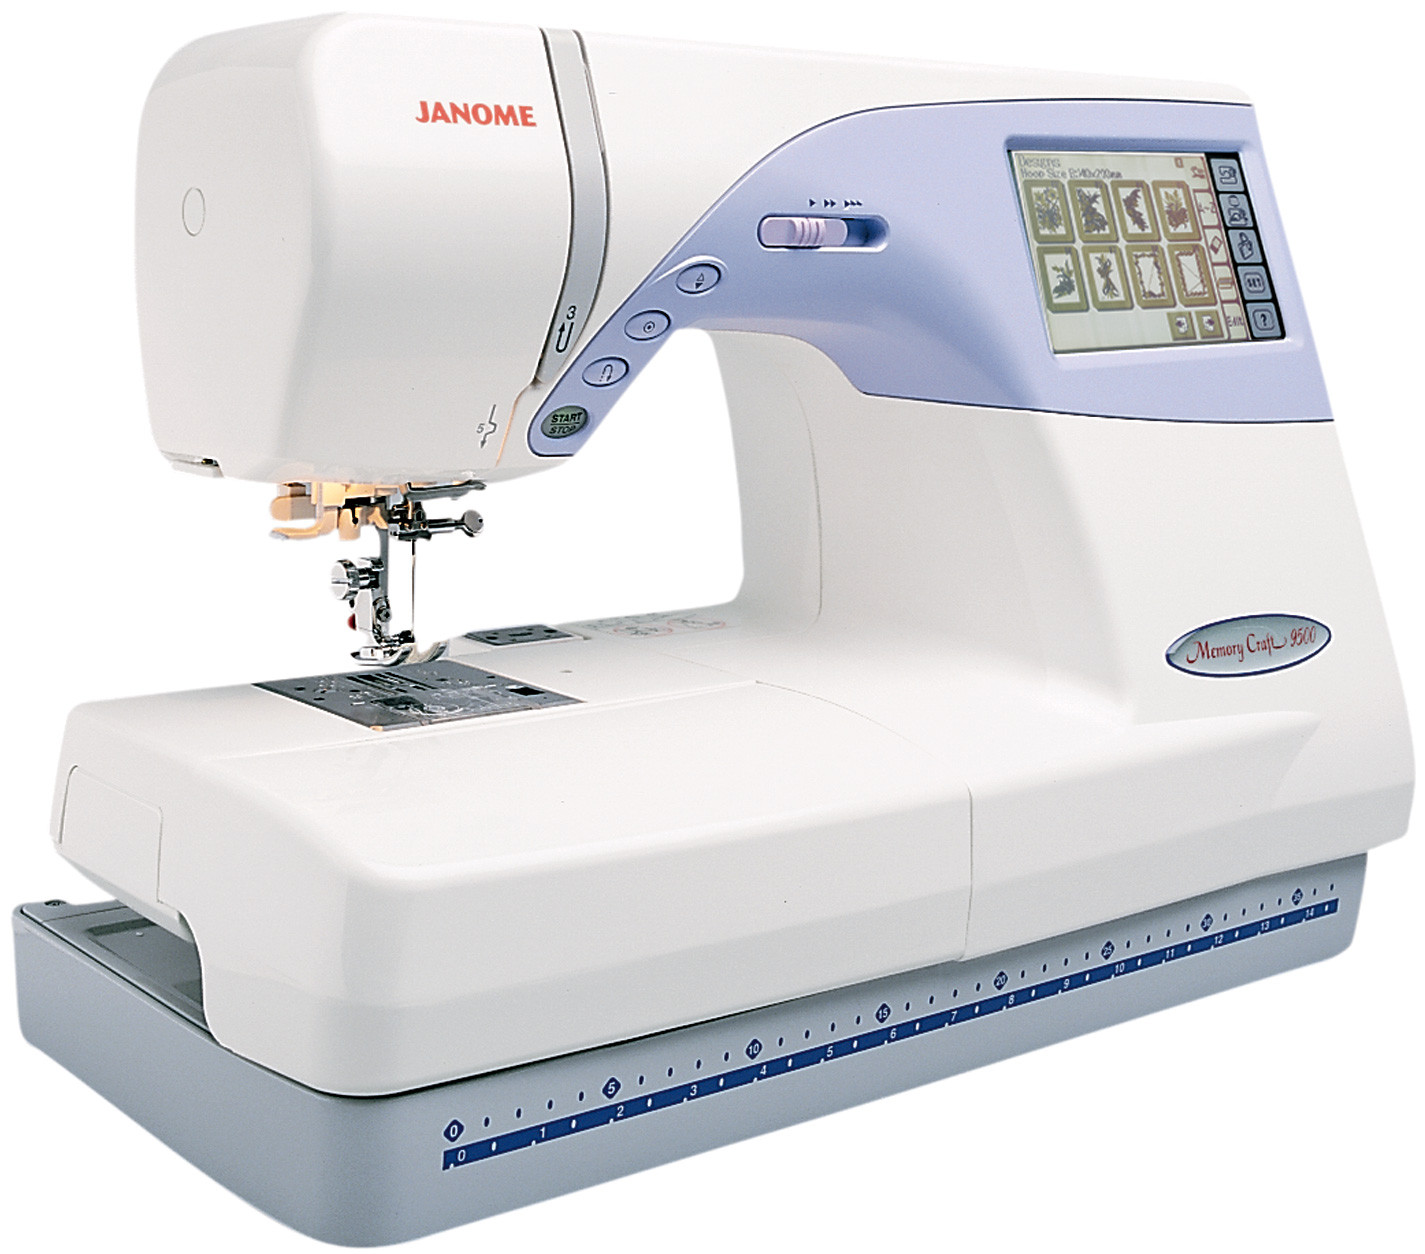 Embroidery Sewing Machine Elegant Janome Memory Craft 9500 Puterized Embroidery Sewing Of Wonderful 40 Images Embroidery Sewing Machine